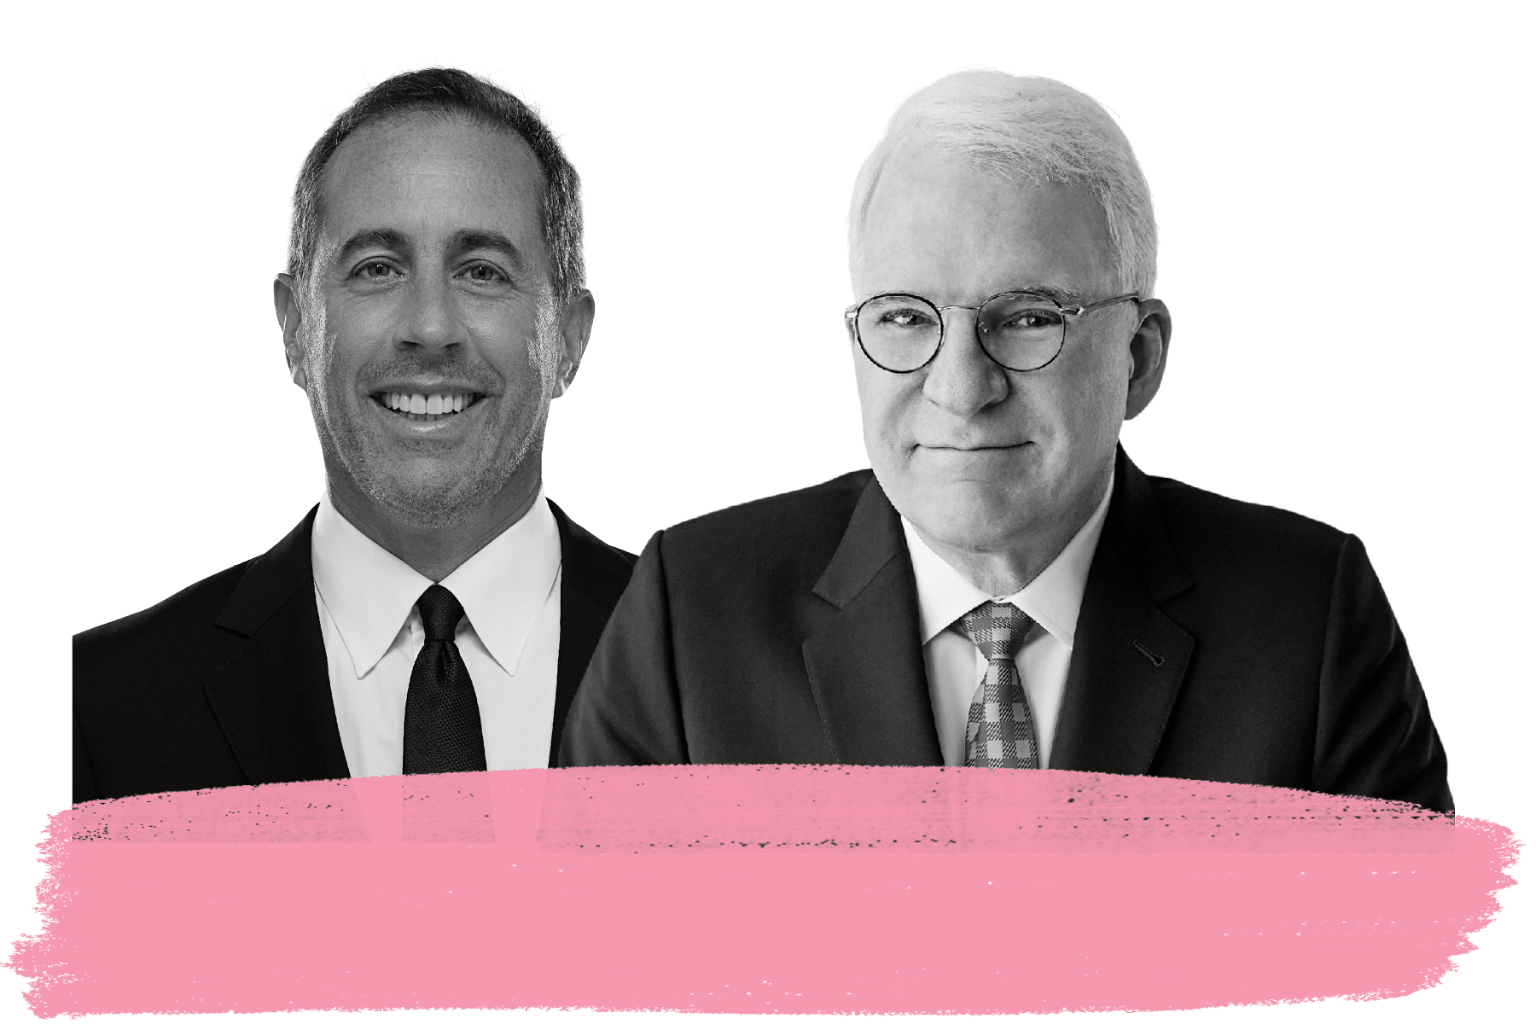 Jerry Seinfeld and Steve Martin